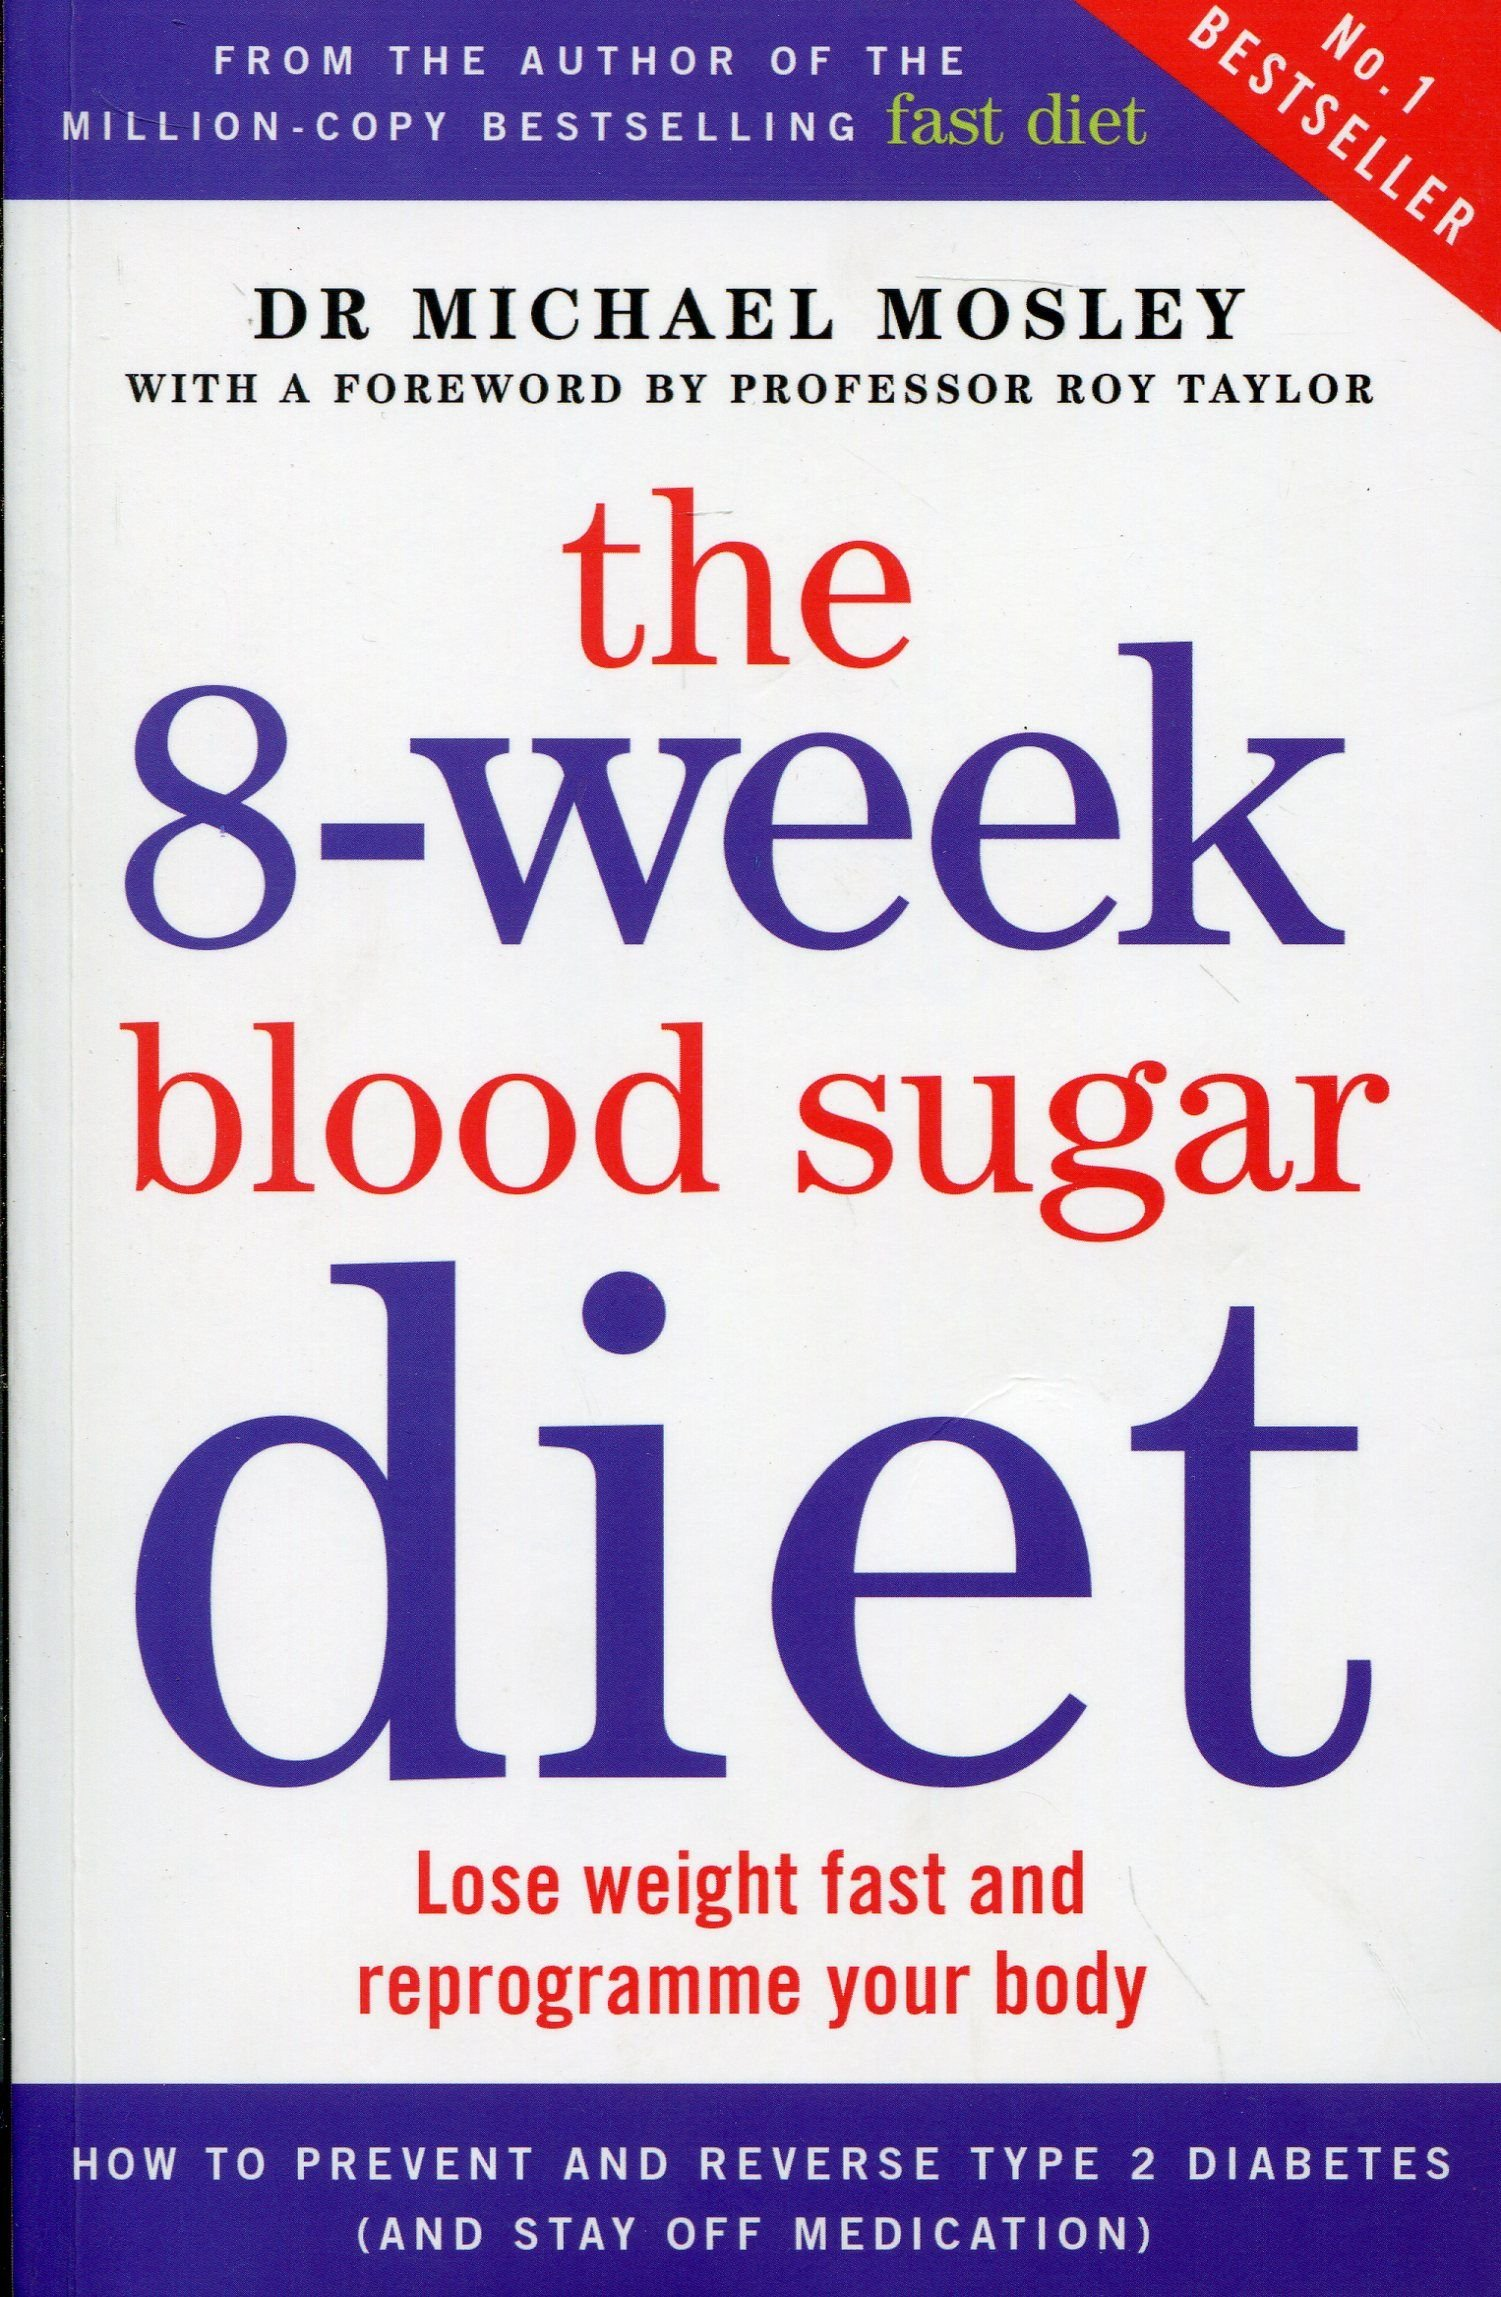 The 8 week blood sugar diet lose weight fast and reprogramme your the 8 week blood sugar diet lose weight fast and reprogramme your body amazon michael mosley 9781780722405 books nvjuhfo Image collections